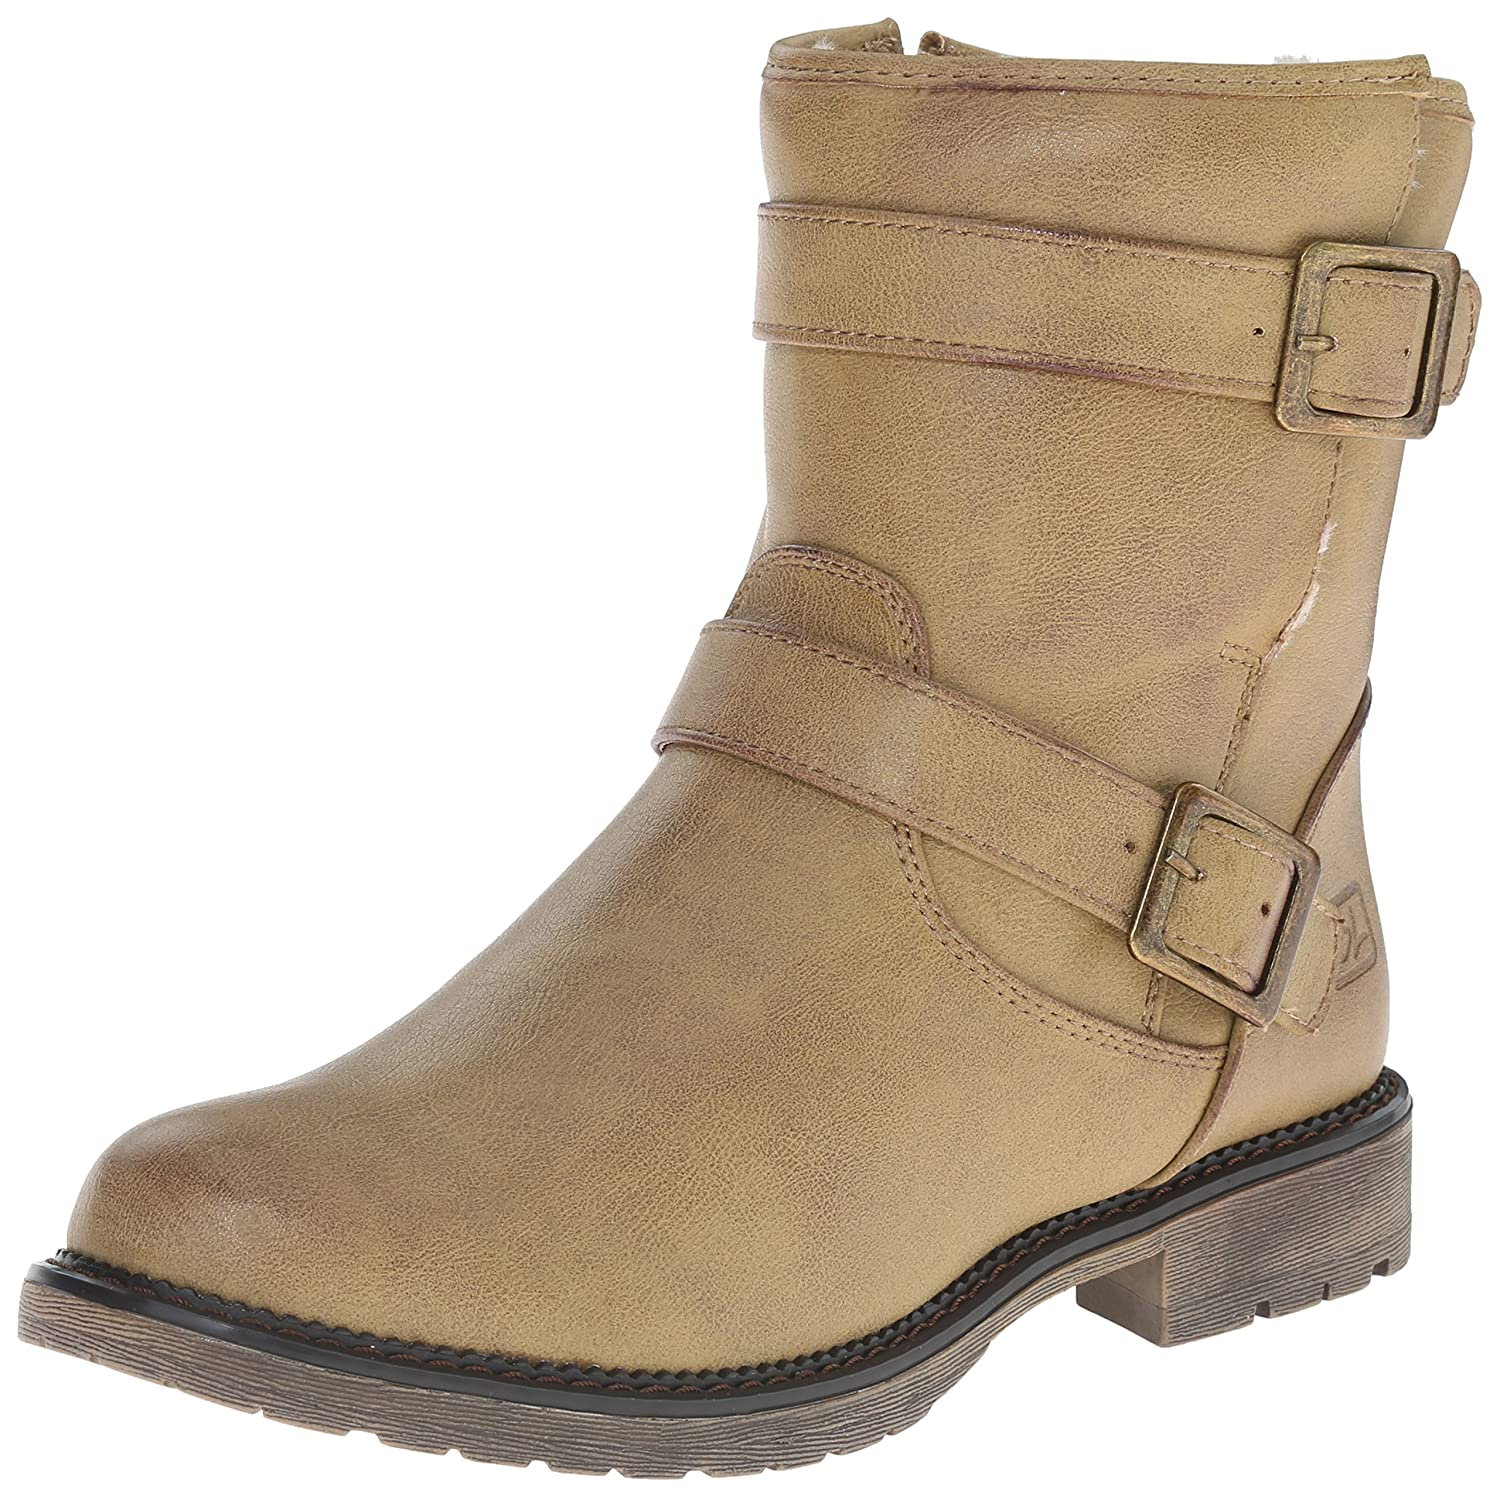 Dirty Laundry Chinese Laundry Women's Riotgirl Boot